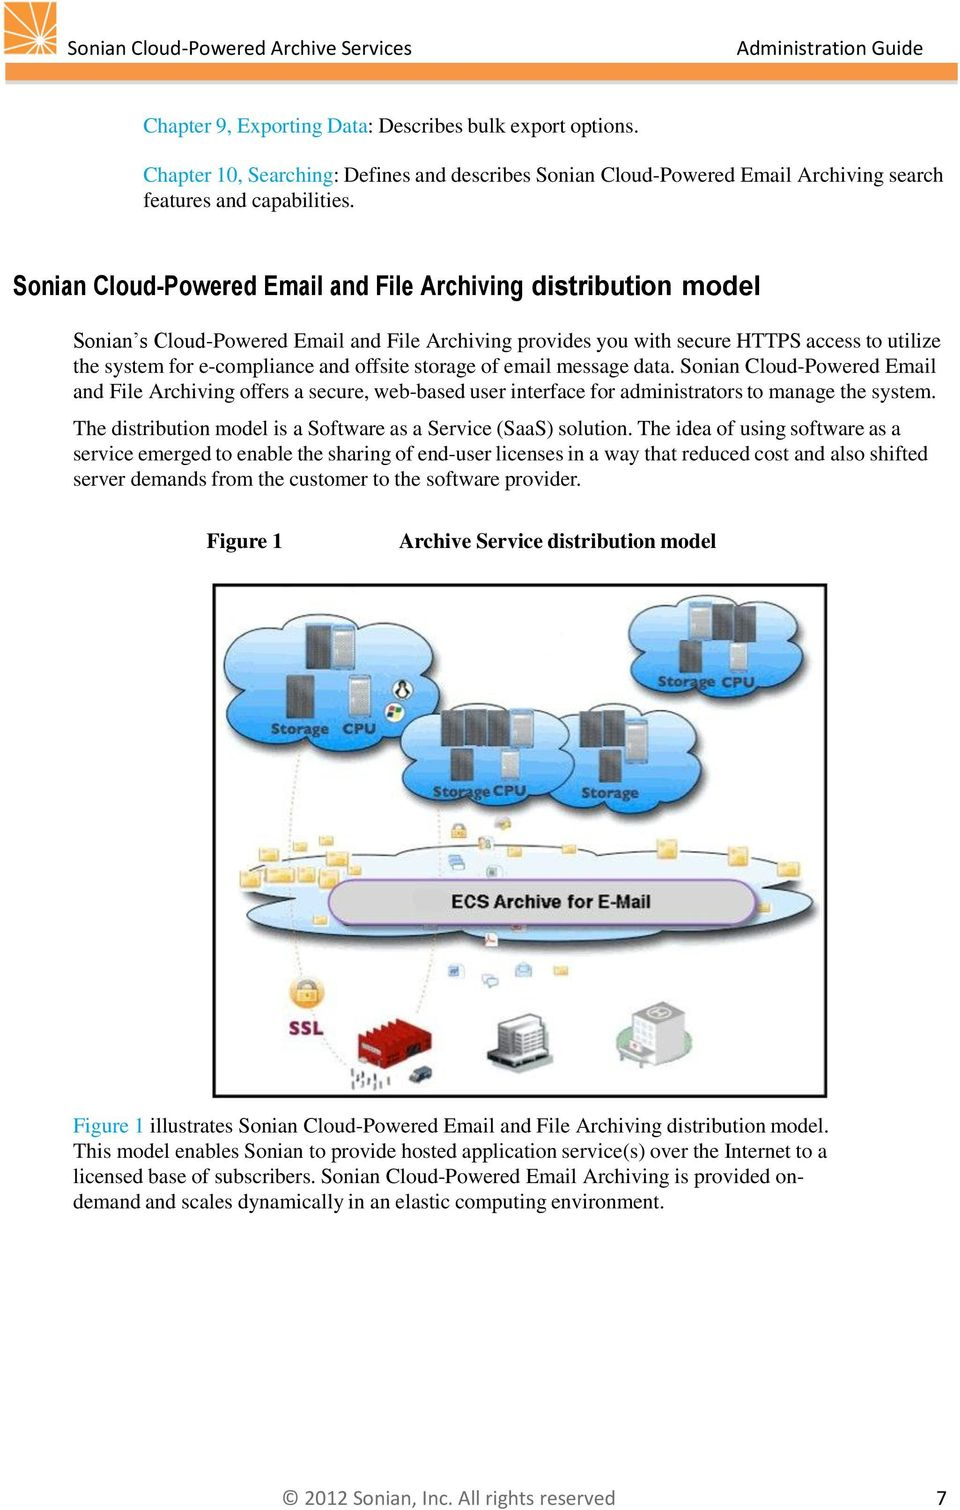 offsite storage of email message data. Sonian Cloud-Powered Email and File Archiving offers a secure, web-based user interface for administrators to manage the system.